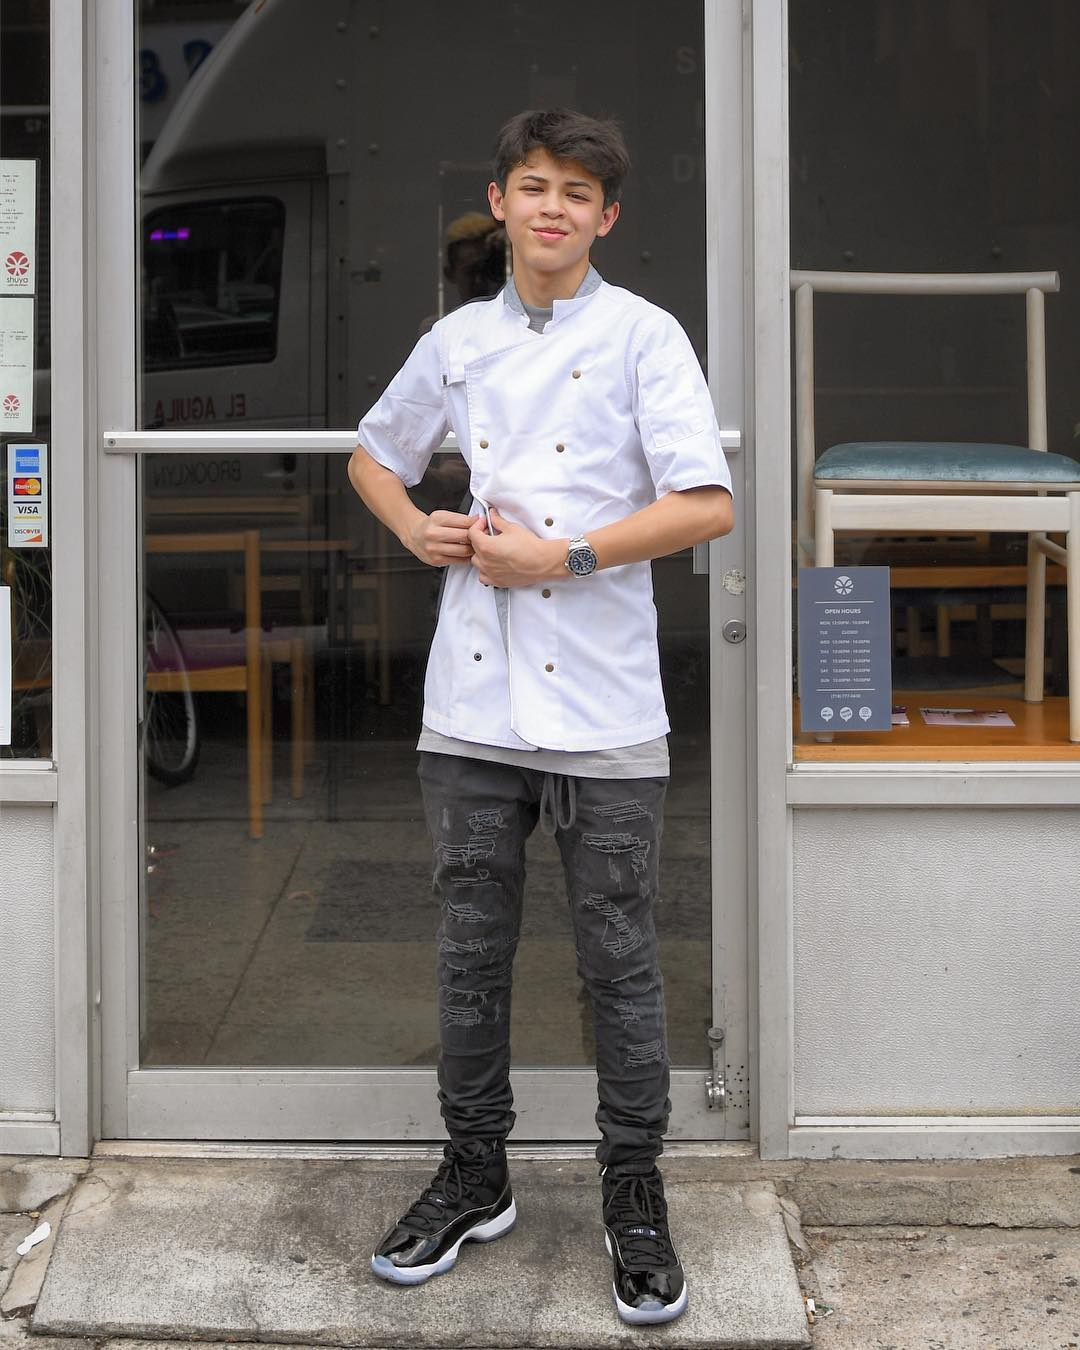 Chef Josh: A teen offering his own tips to help teens pack their own lunches